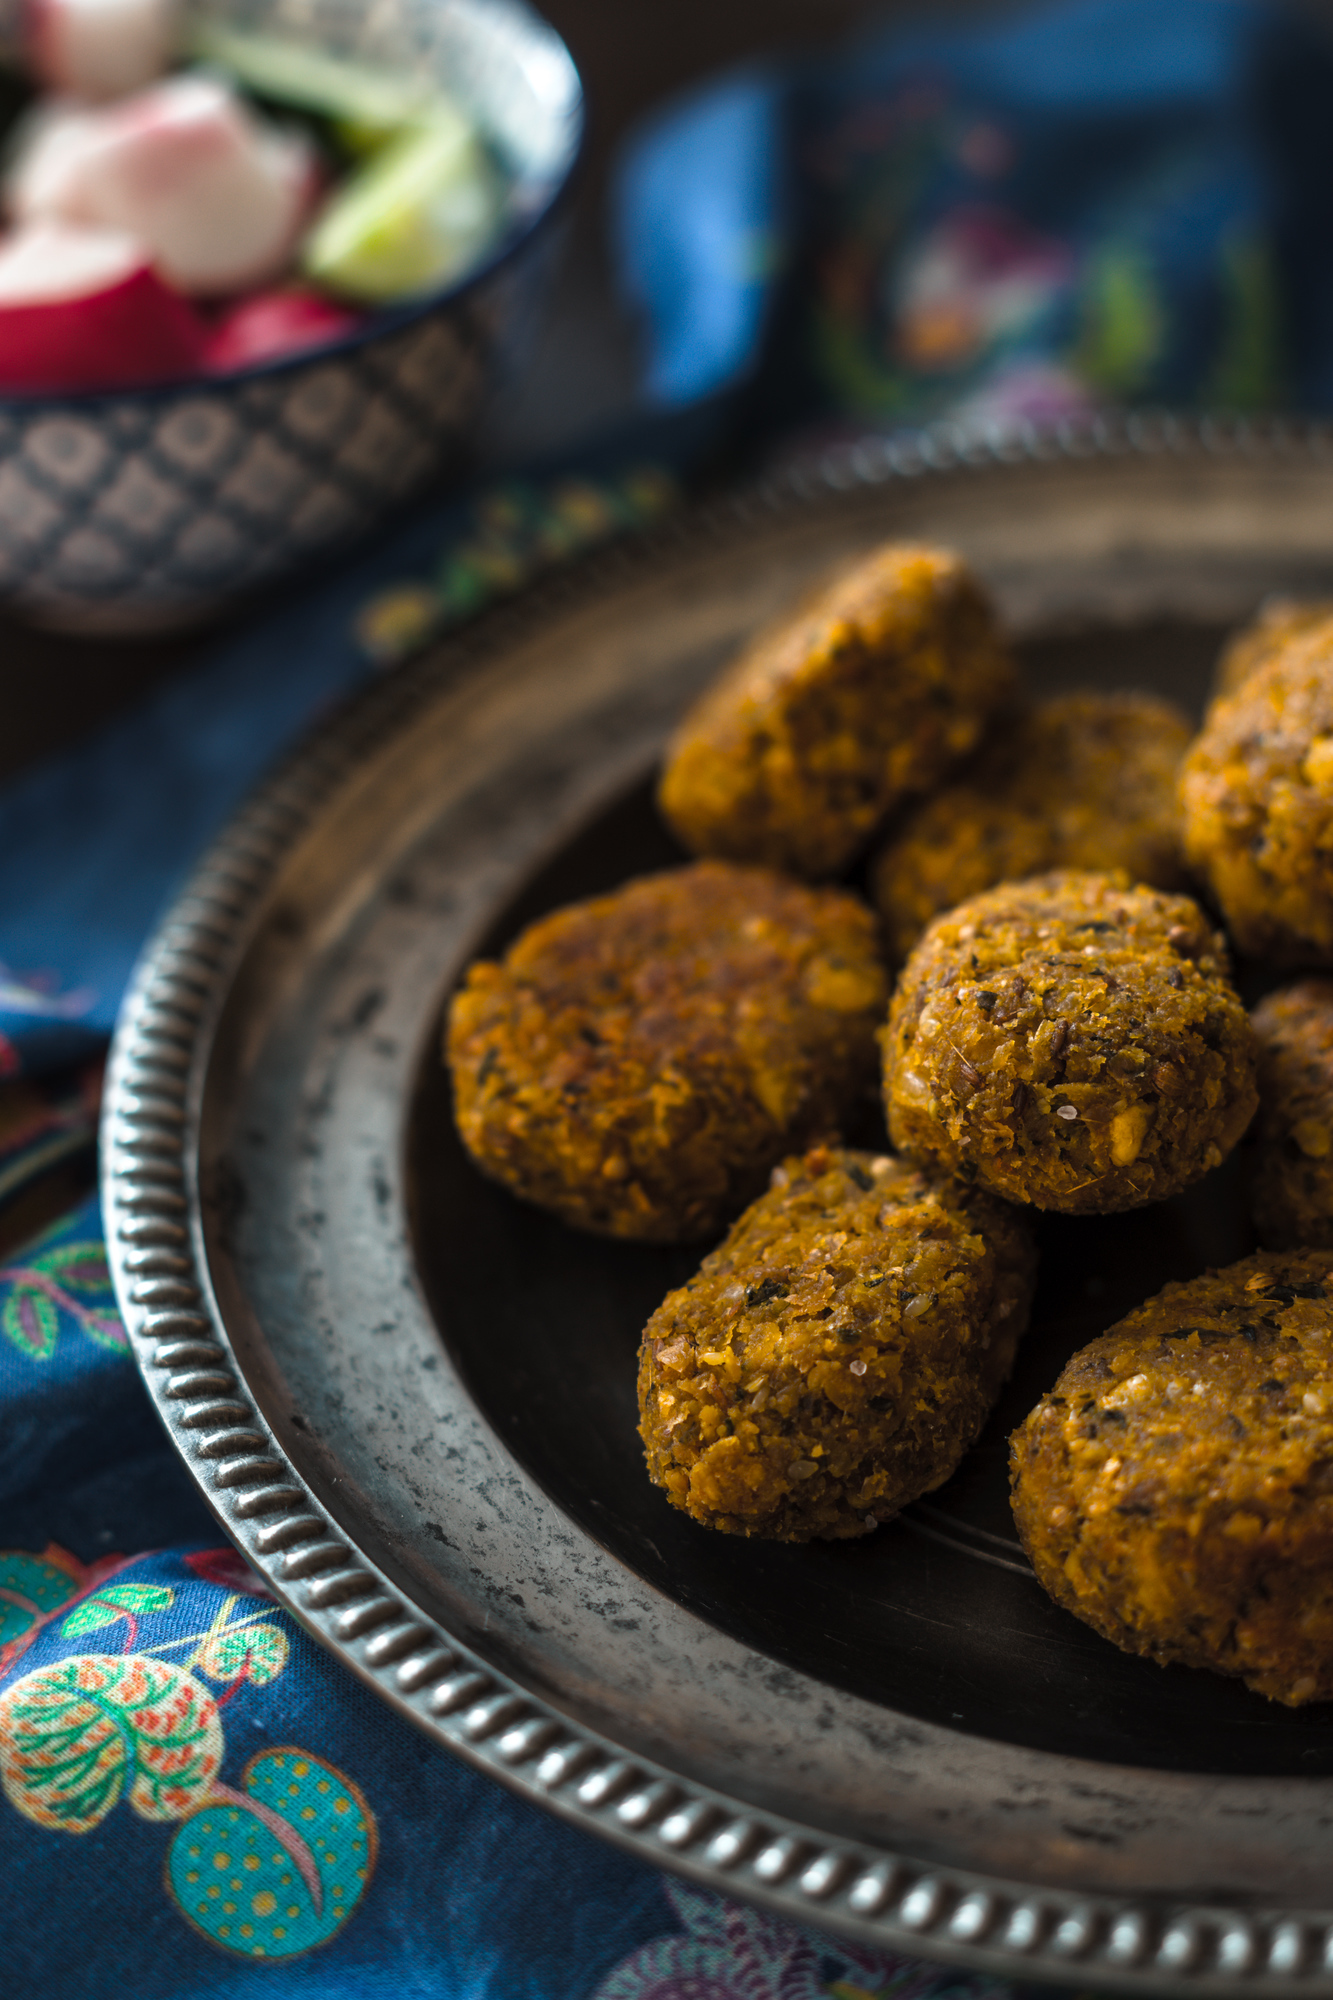 Falafels are just one of the Jordanian food that will surprise you. Discover what food in Jordan you need to try with this delicious guide.